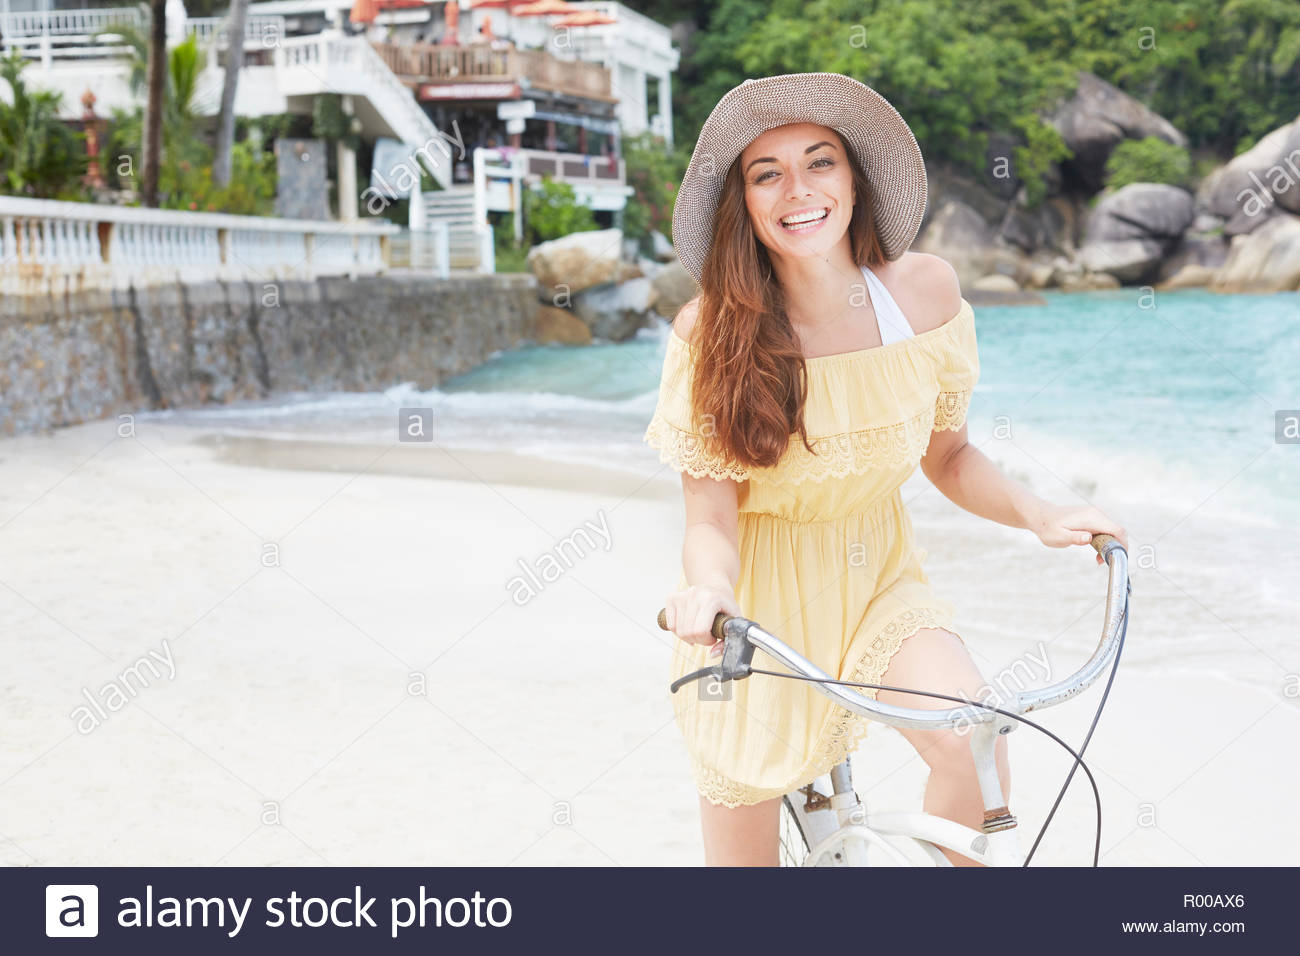 Young woman wearing yellow dress riding bicycle on beach Stock Photo